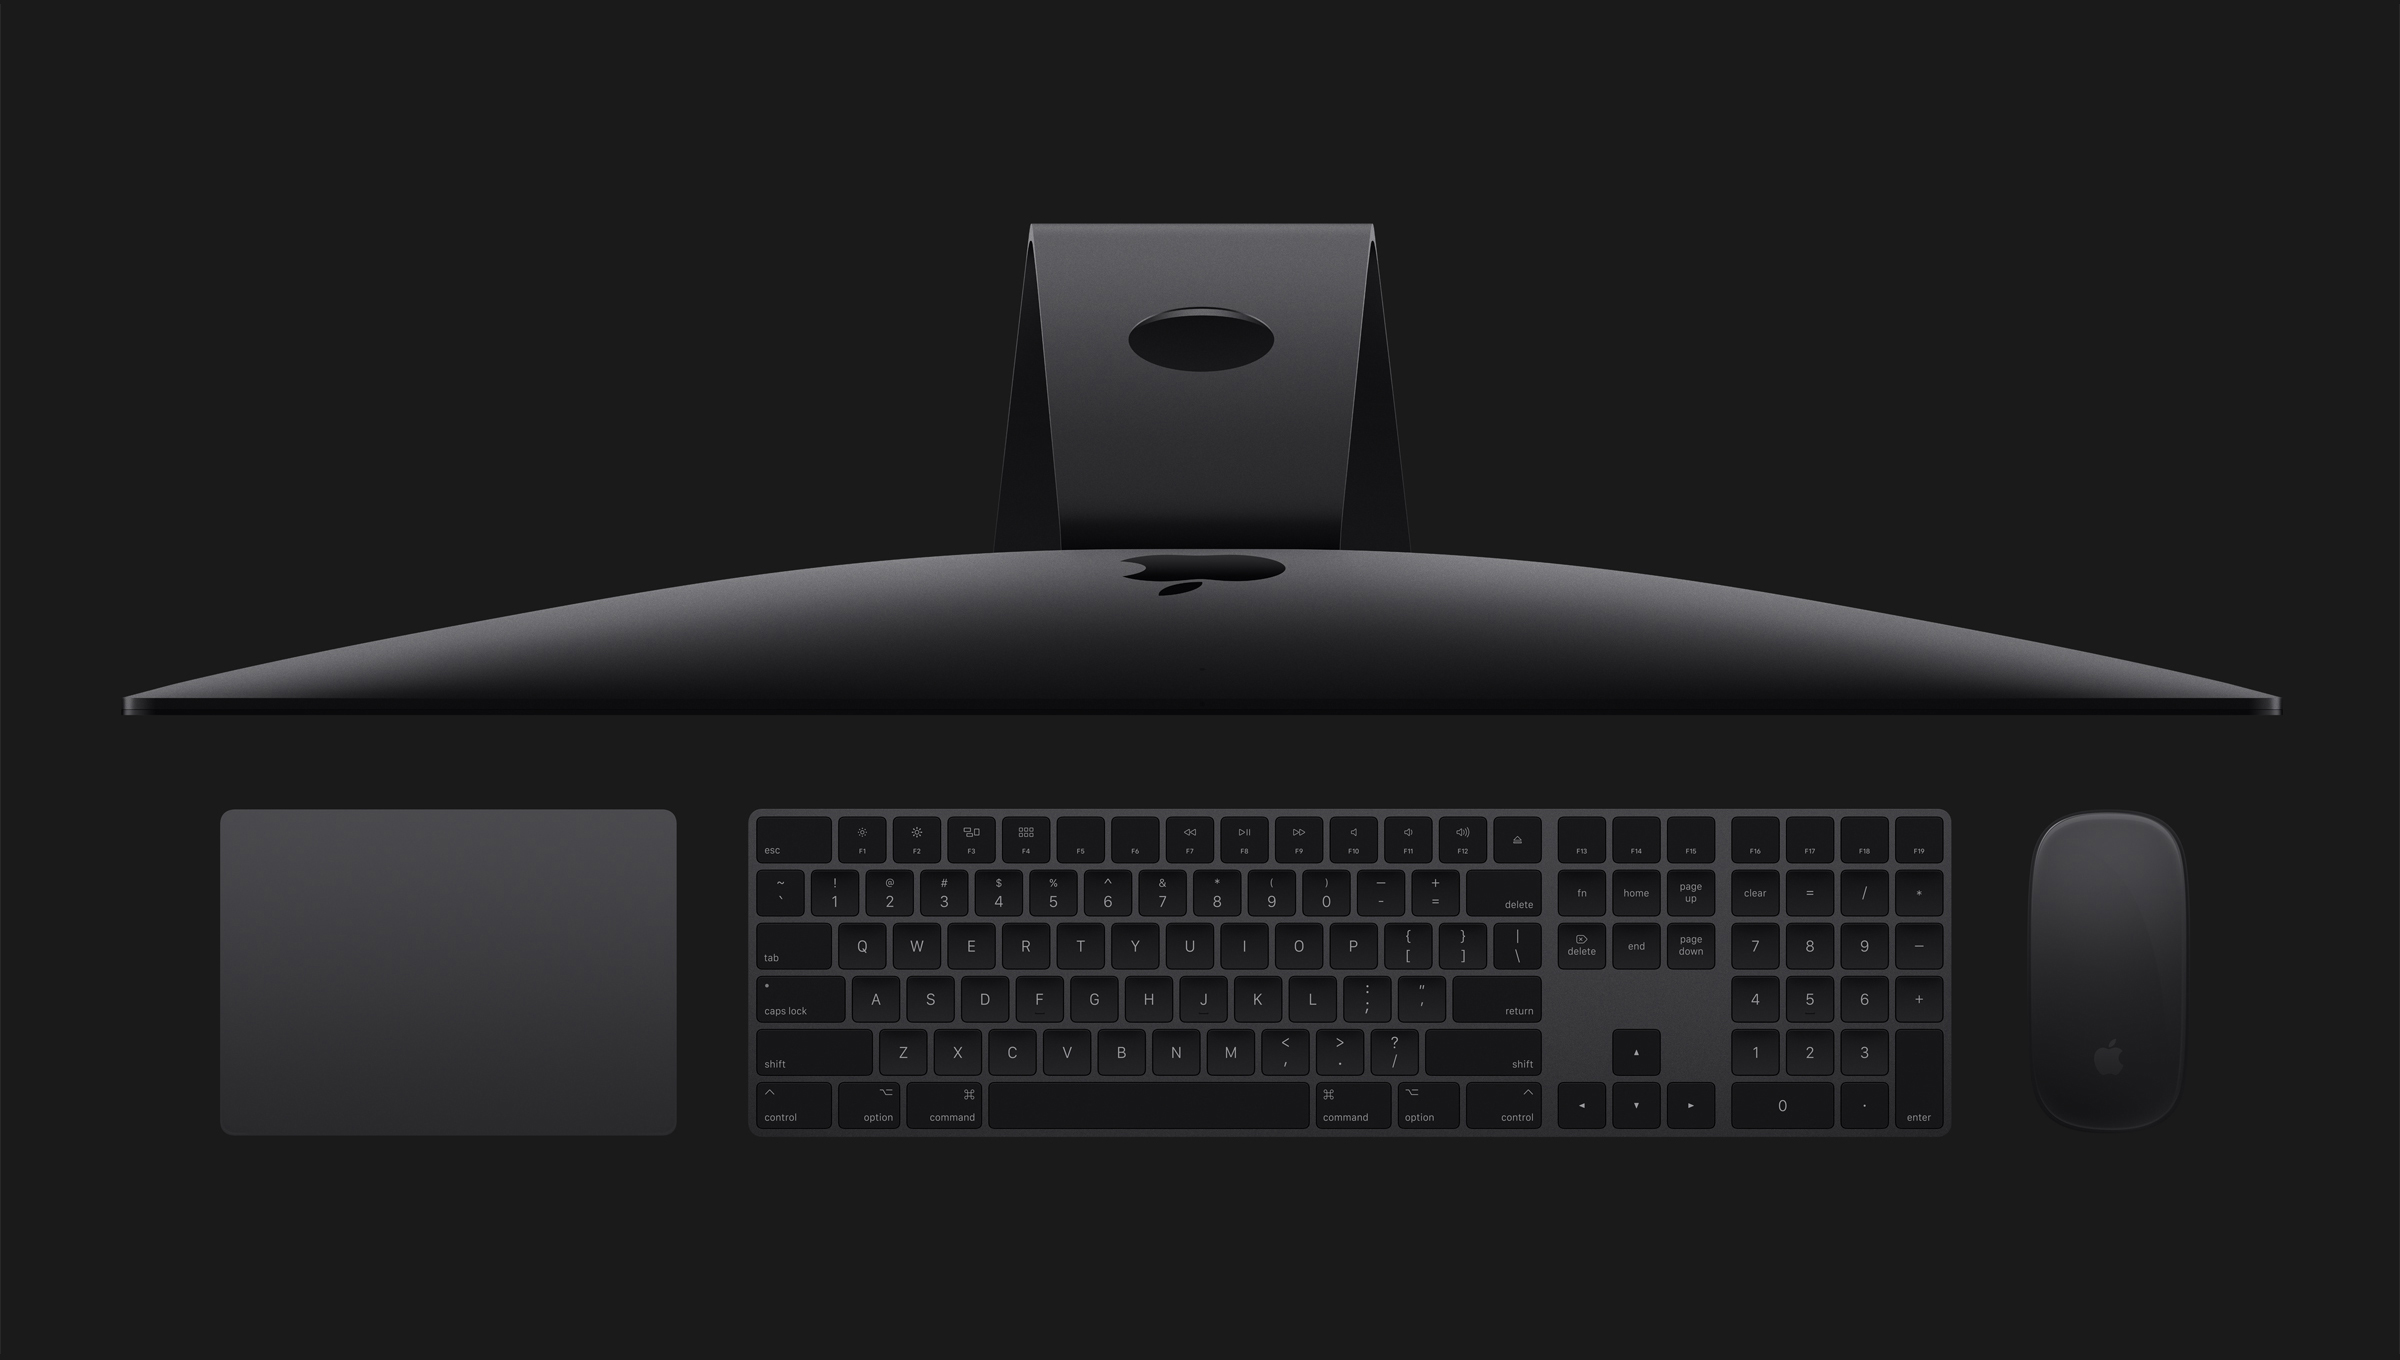 The new Mac Pro will be turning a few heads in the Creative content market when it hits the market [apple.com/uk/newsroom/2017/]